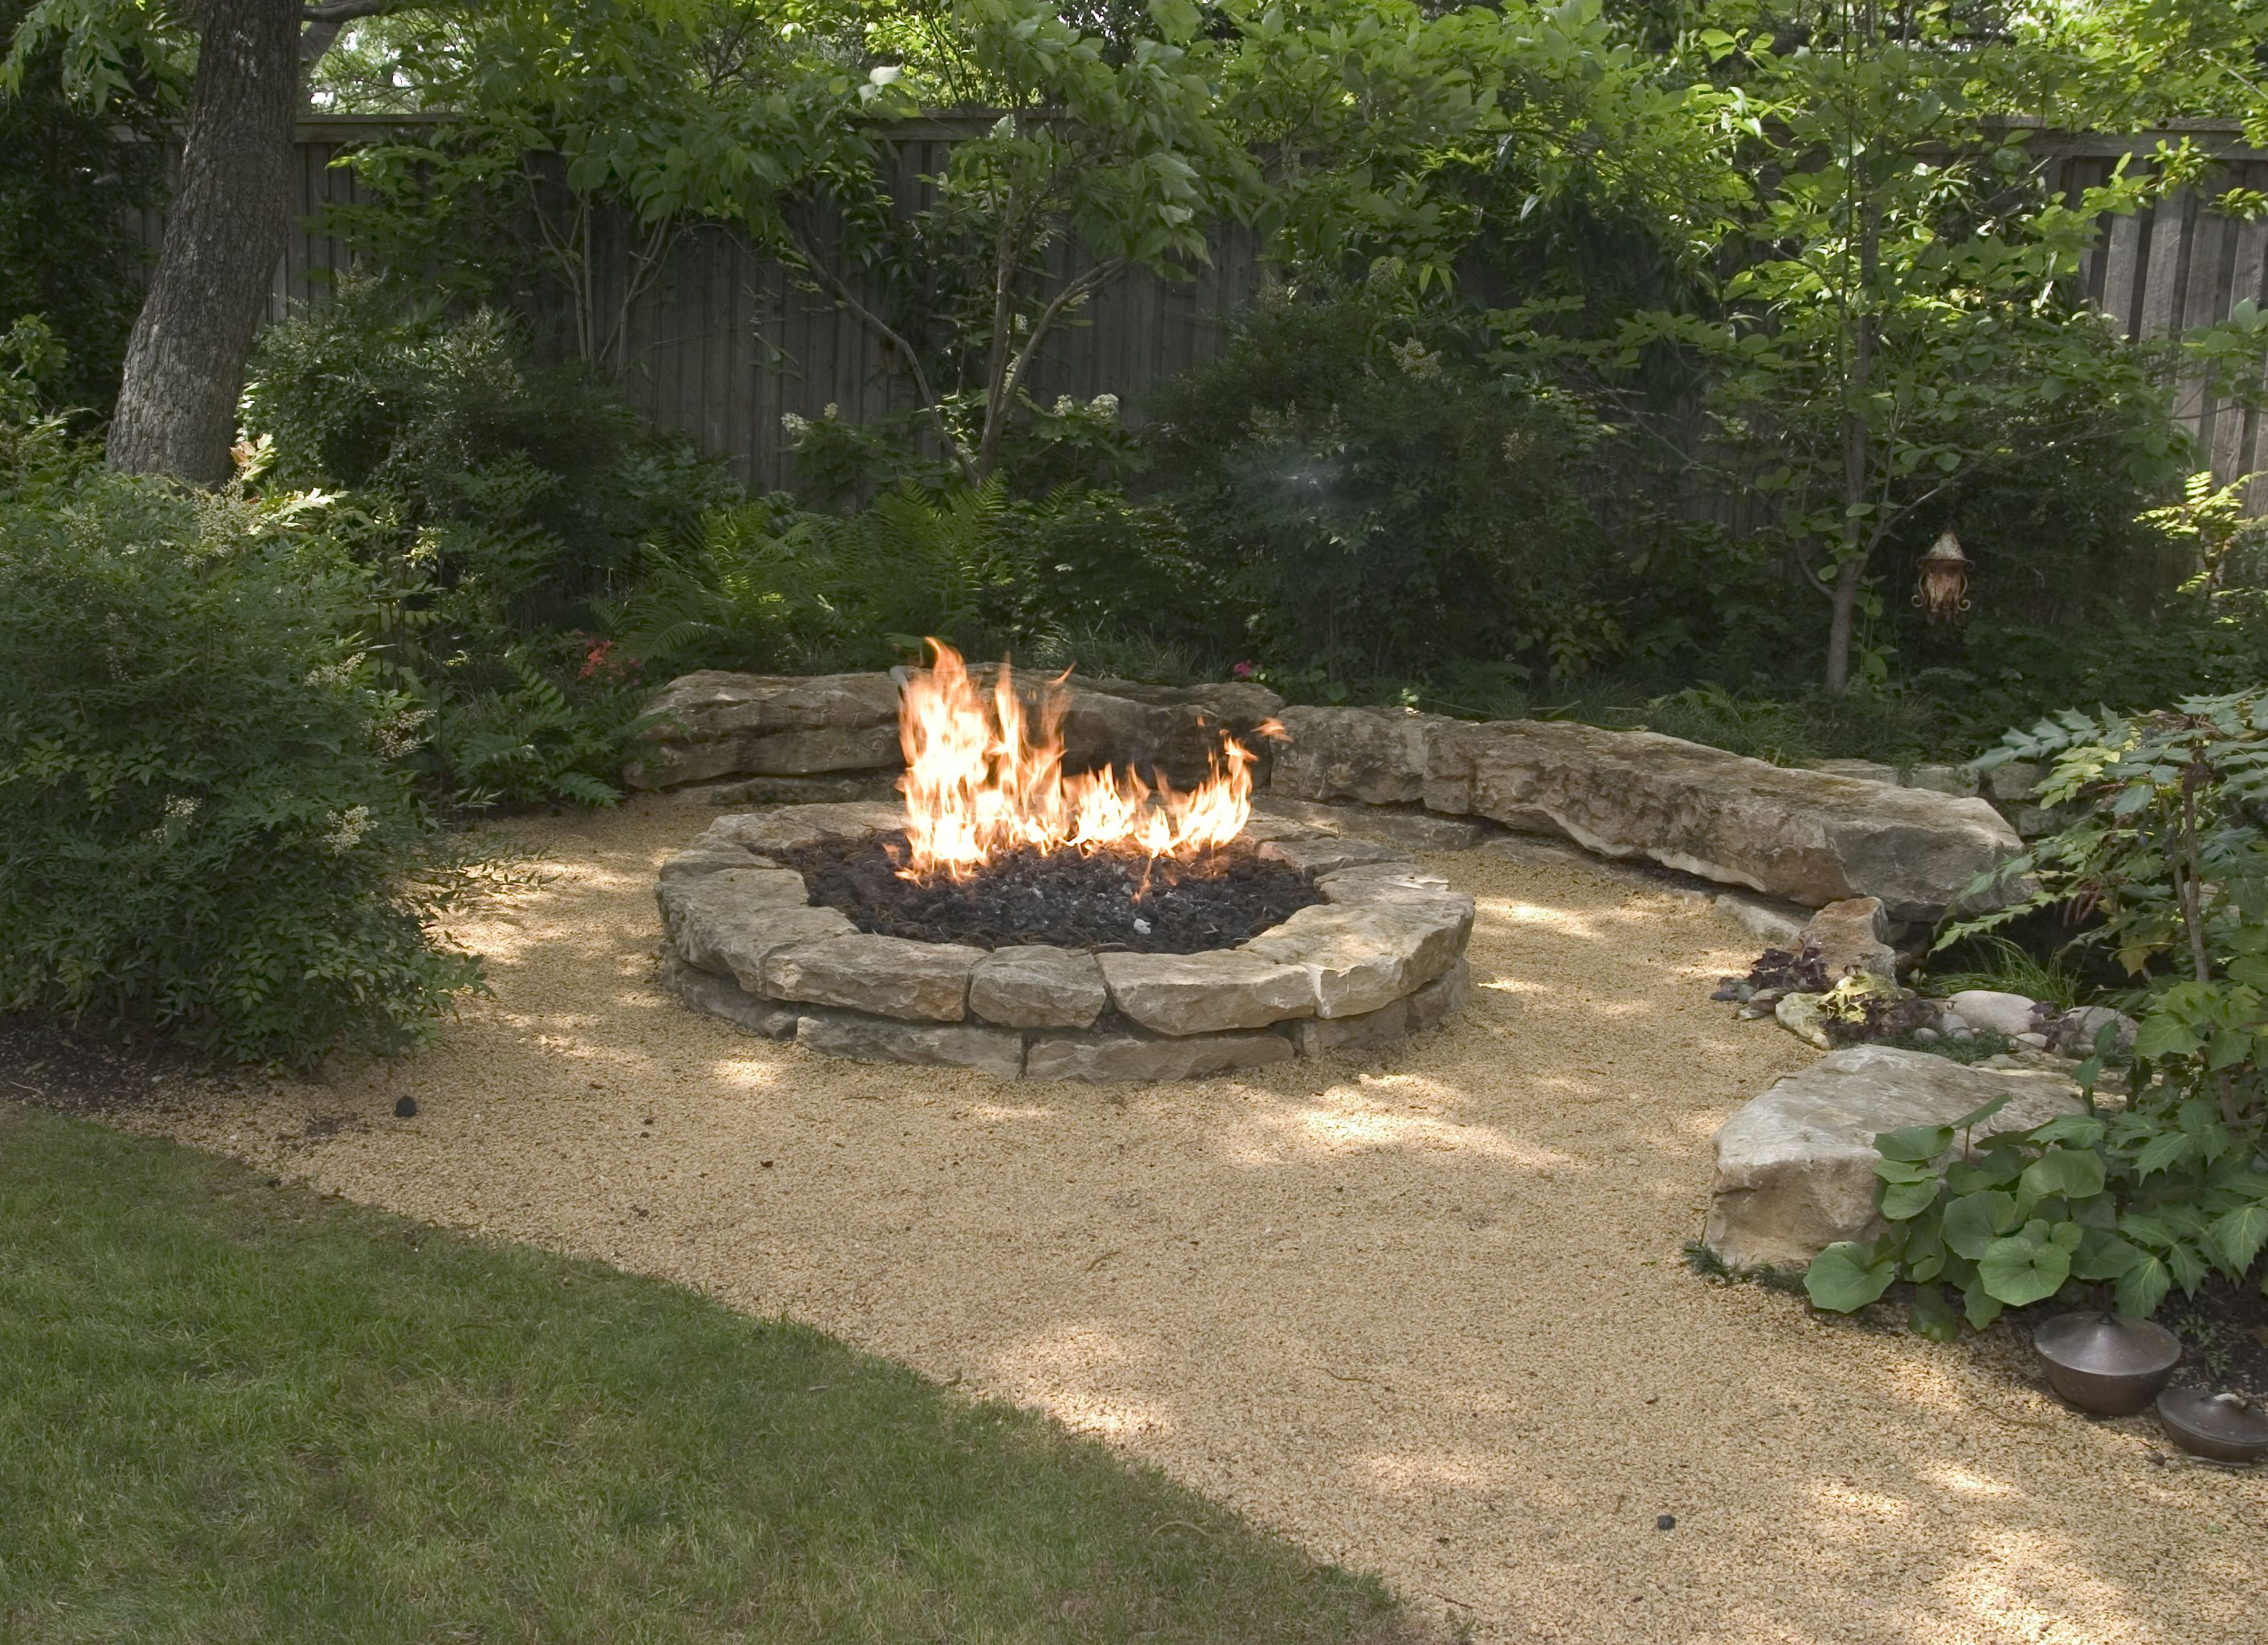 fascinating fire pit ideas outdoor decoration for backyard inspiration pictures sophisticated rustic stones fire pit ideas with stones circled fire pit - Outdoor Fire Pit Design Ideas